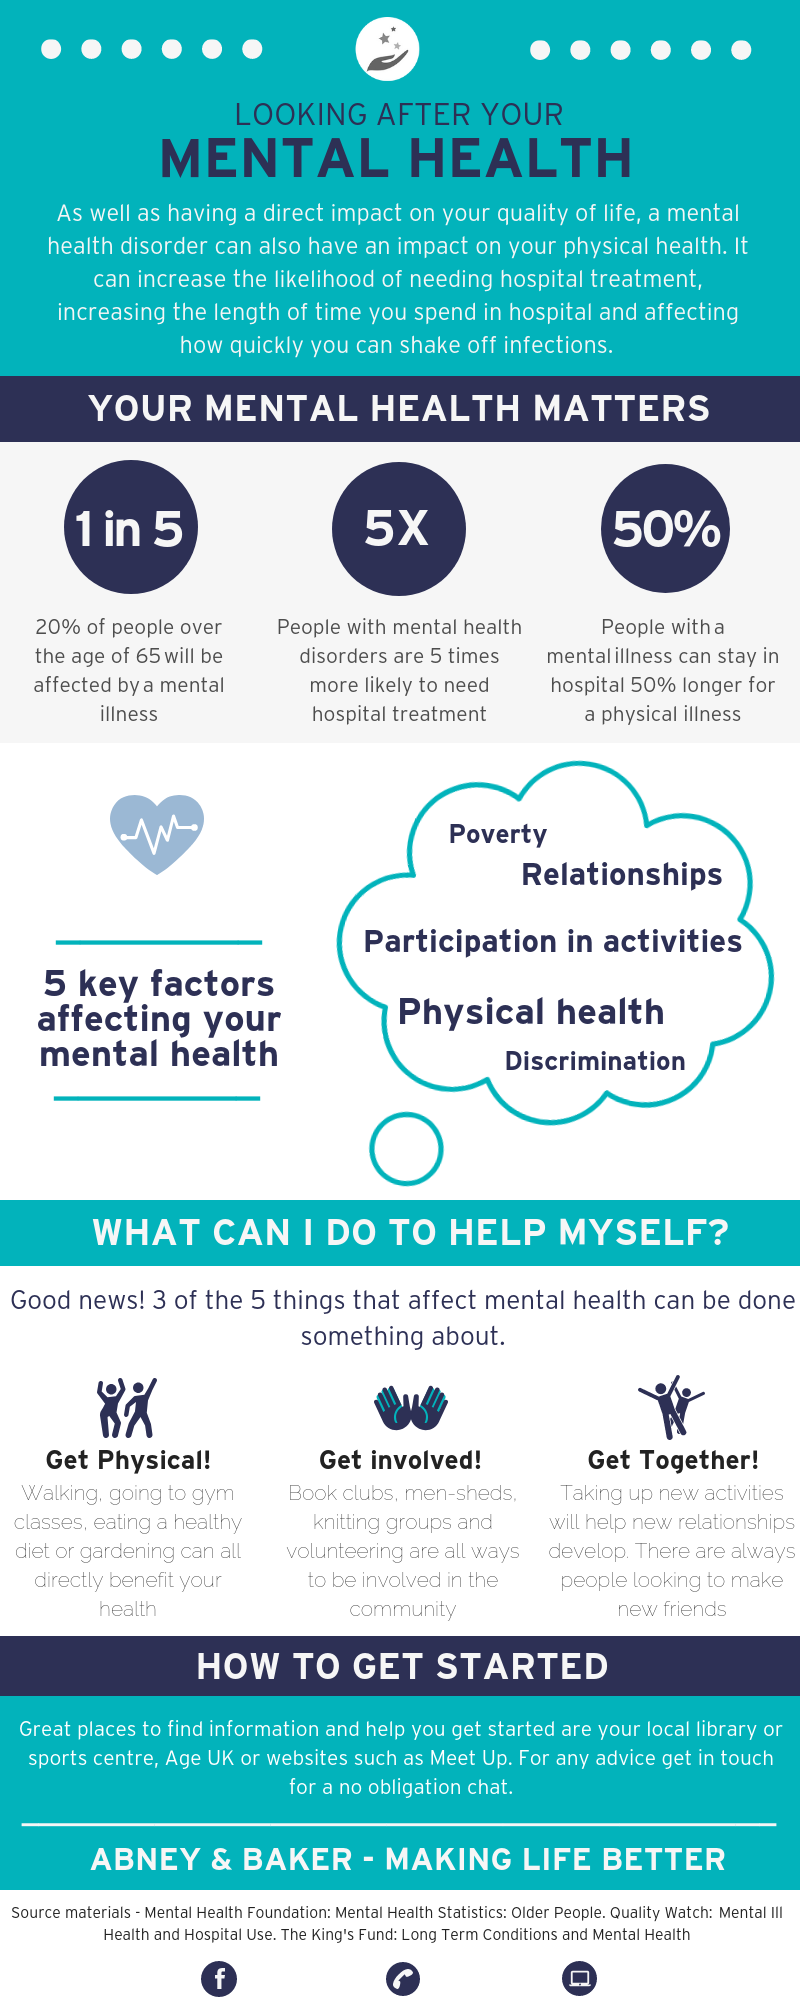 Please do feel free to download this free mental health guide and share with people who may benefit.